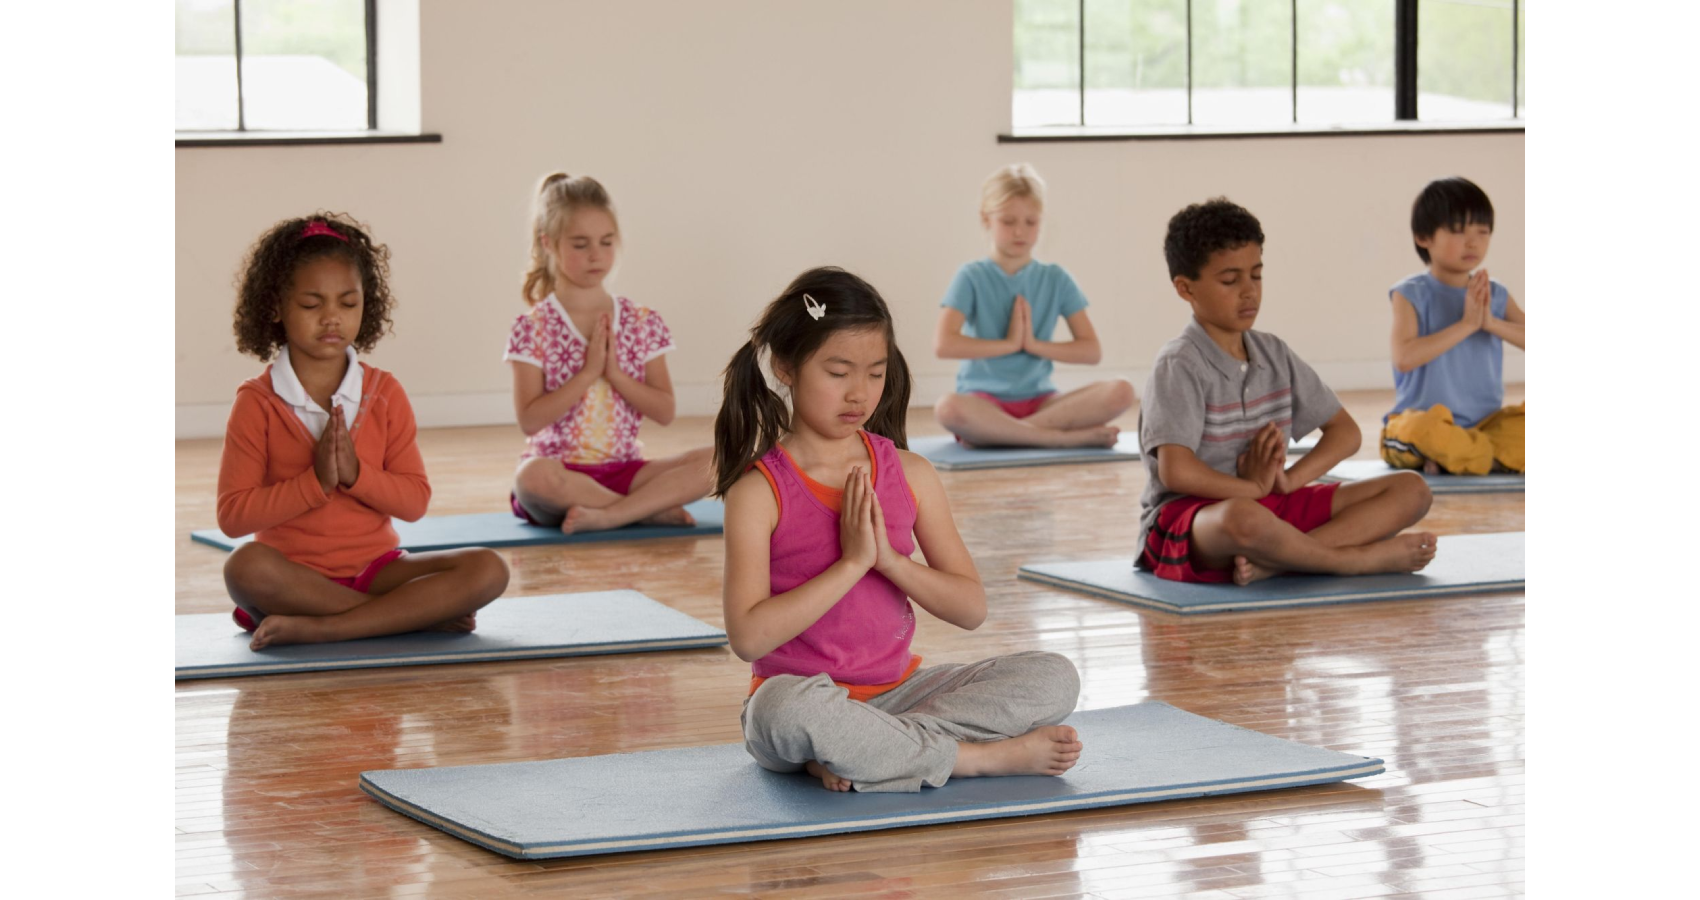 Alabama Bans Yoga In School, For Fears Of The Practice Spreading Hinduism